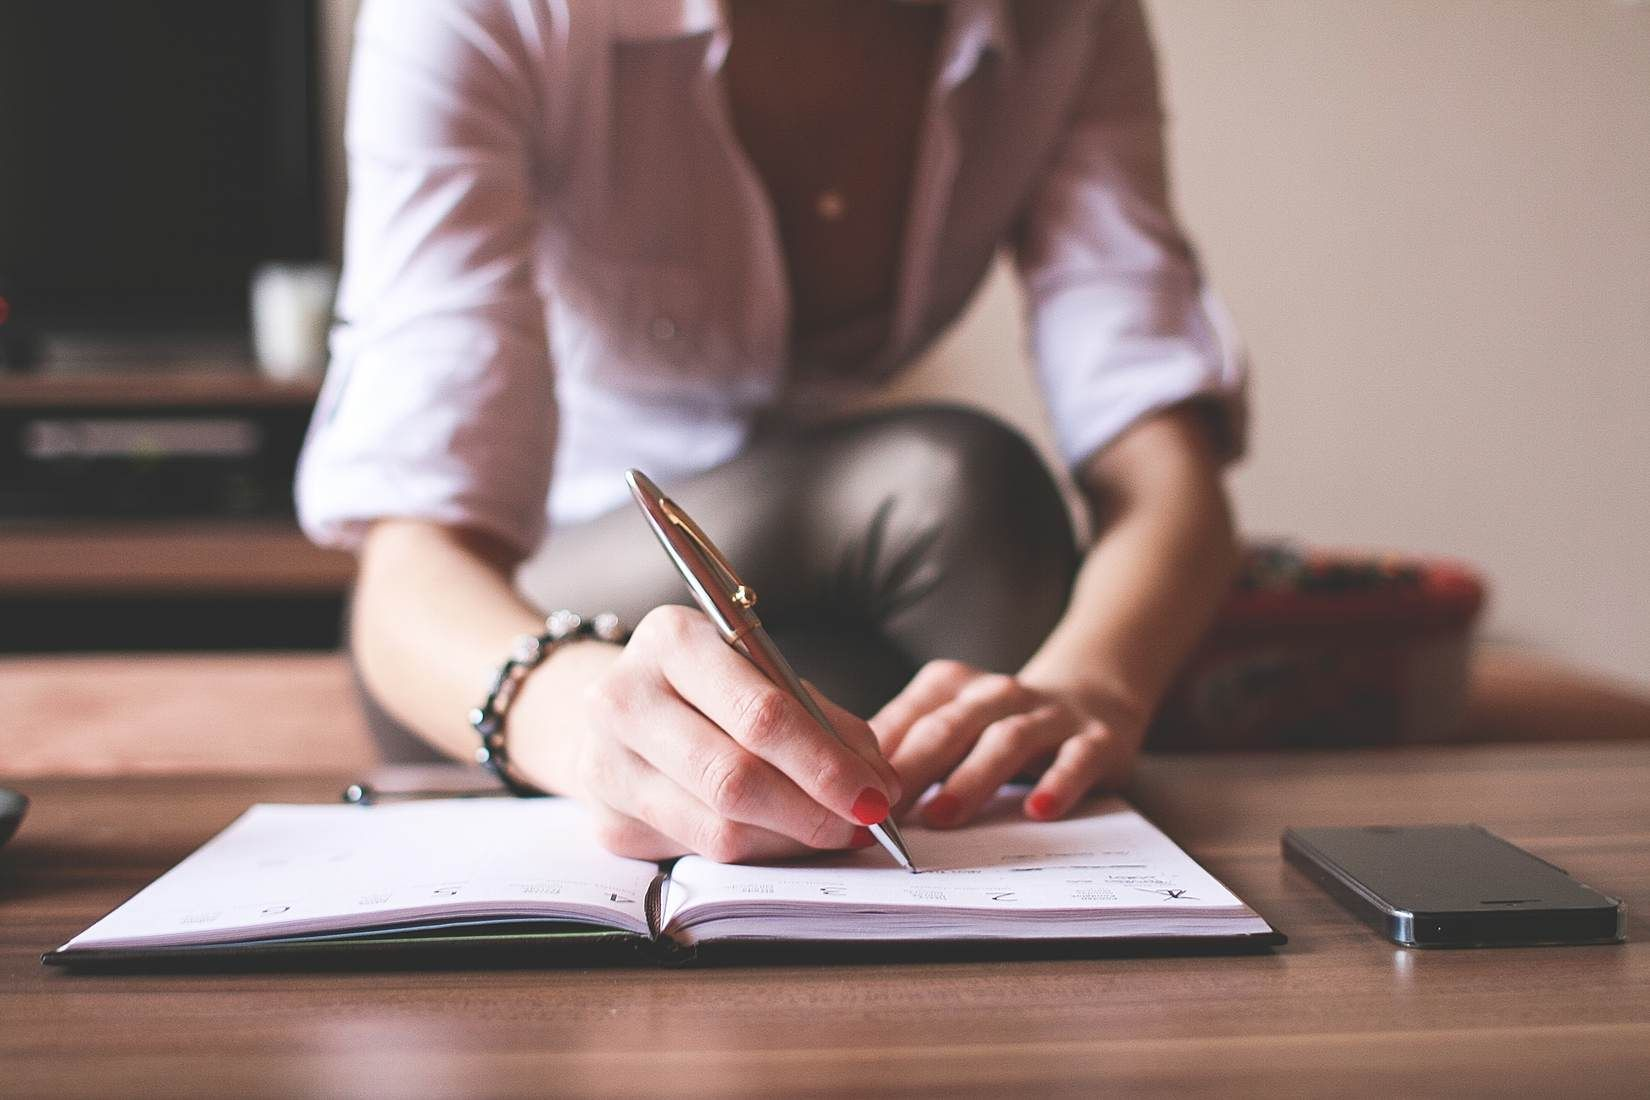 girl writing in a diary free image download   photography